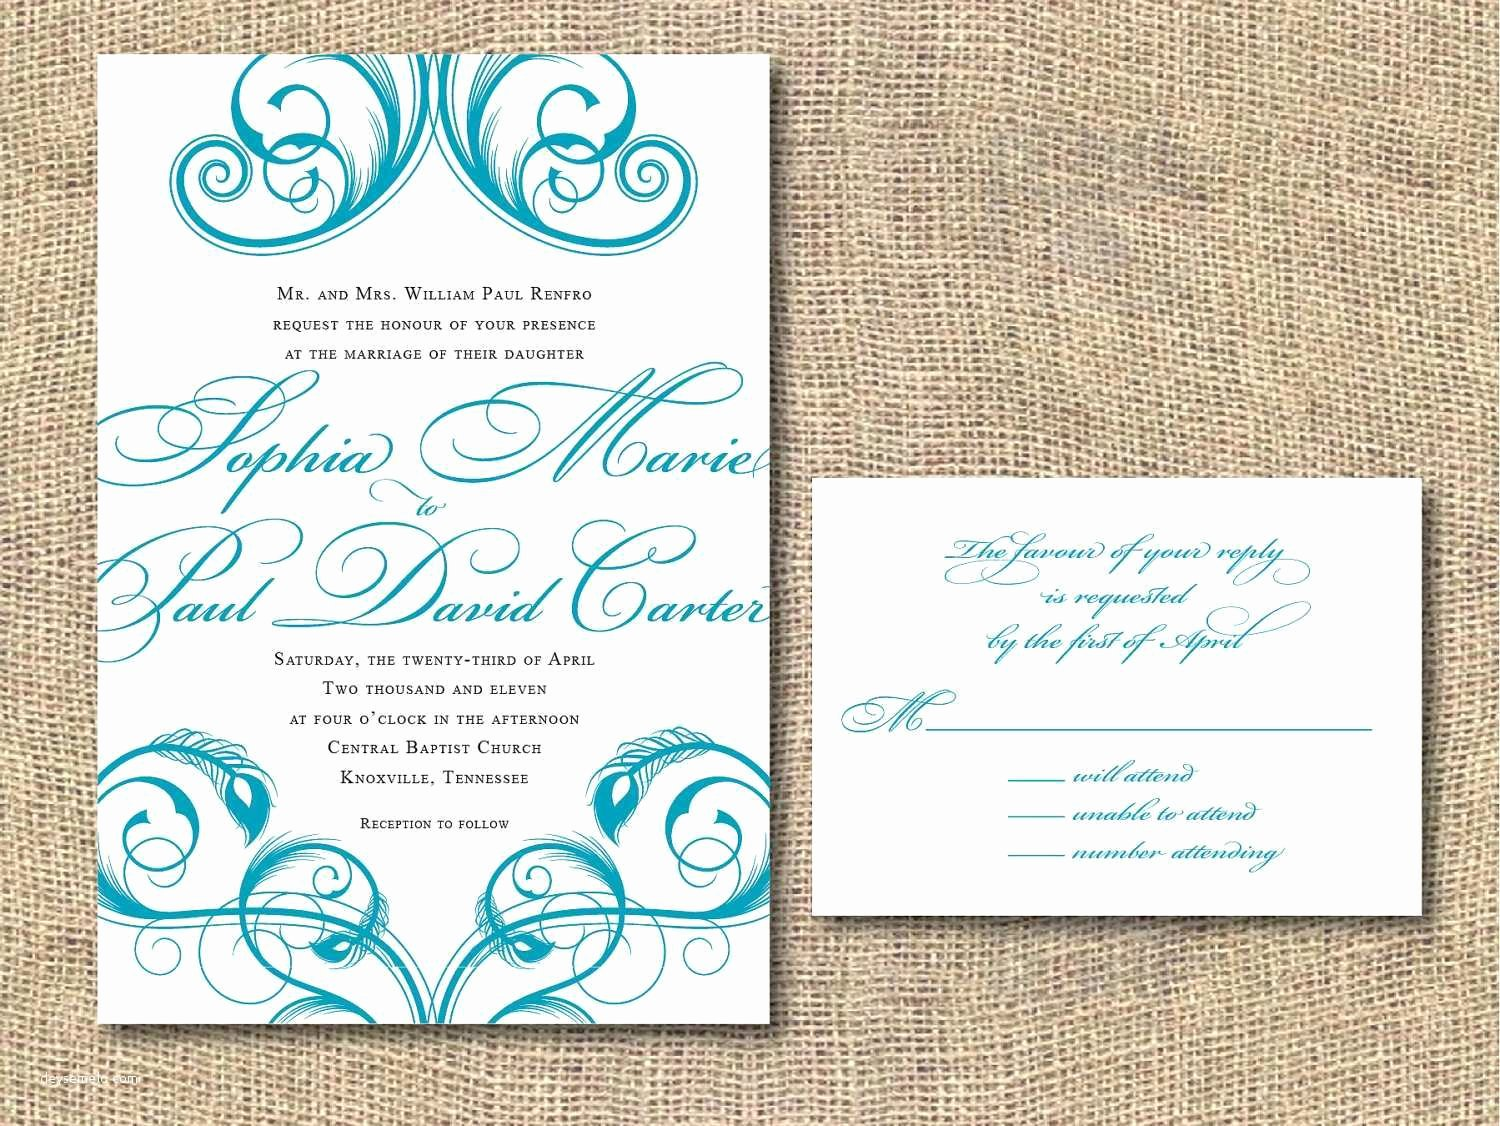 2018 Hobby Lobby Wedding Invitations Instructions with